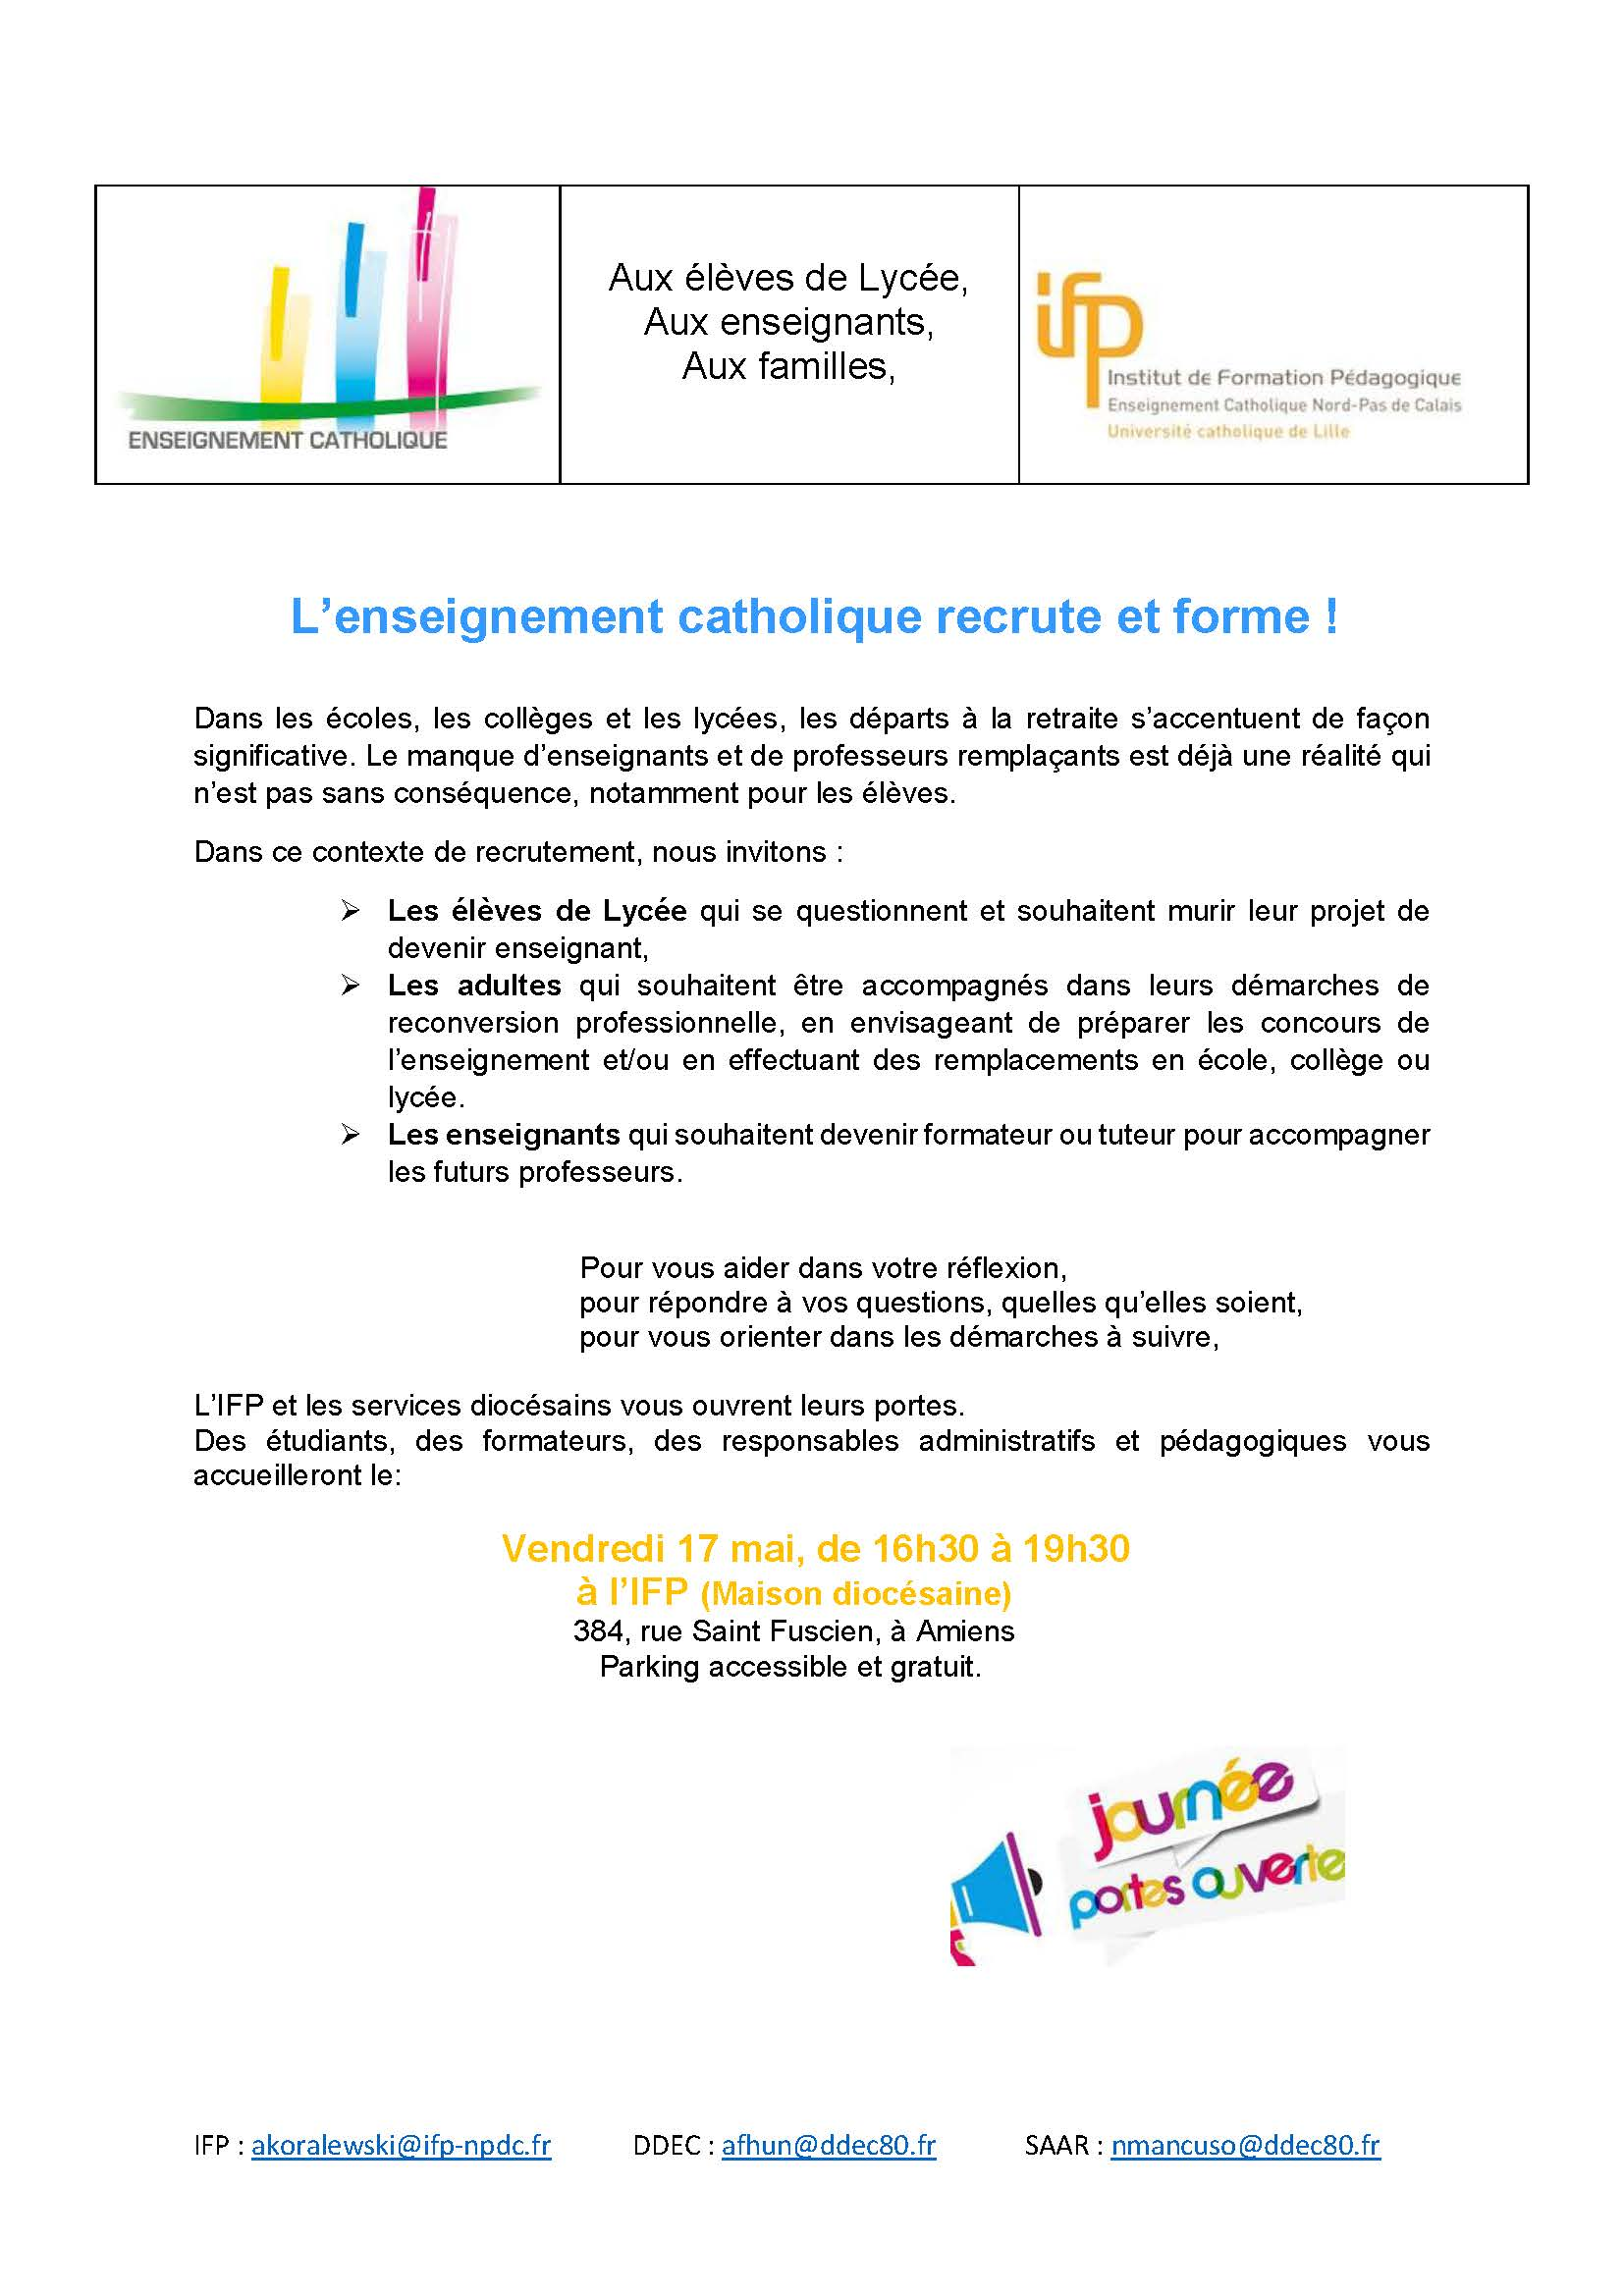 Lettre P.O. IFP 2019